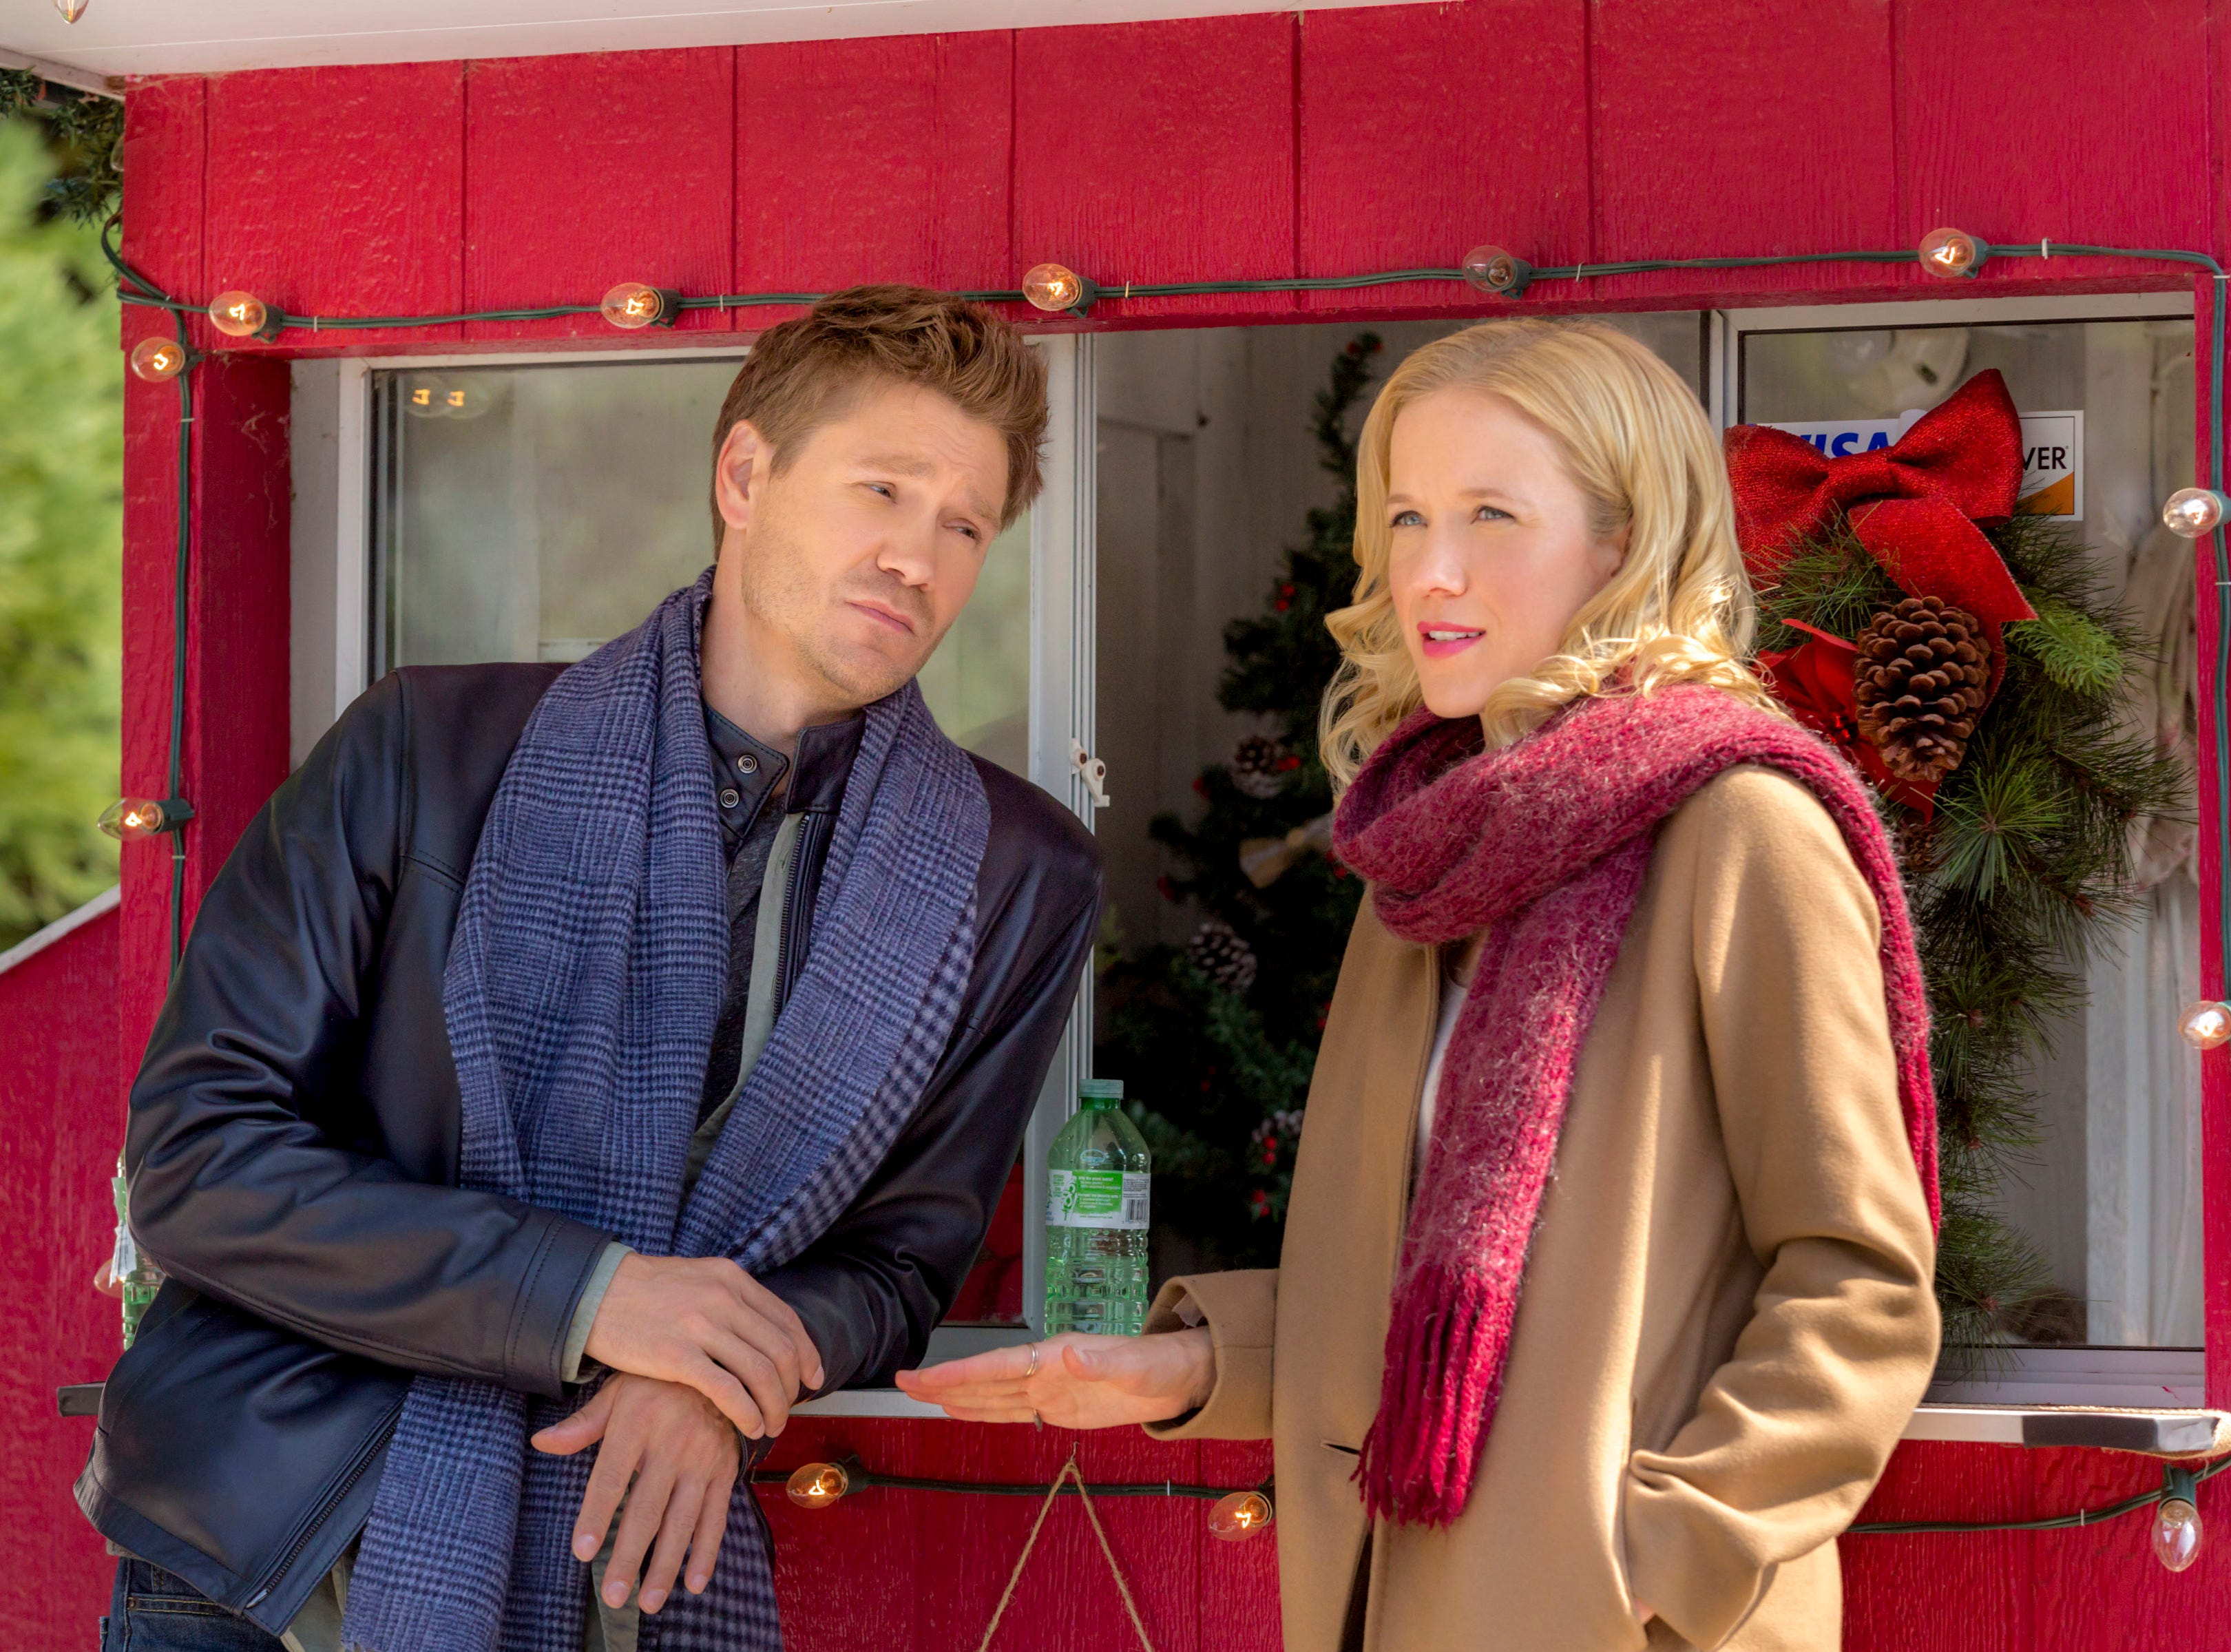 """""""Road to Christmas"""" (Hallmark, Nov. 4, 9 EST/PST): Jessy Schram (""""Nashville"""") is Maggie Baker, a television producer who is forced to bring on former producer Danny Wise (Chad Michael Murray, """"One Tree Hill"""") to help her with an annual Christmas TV special."""